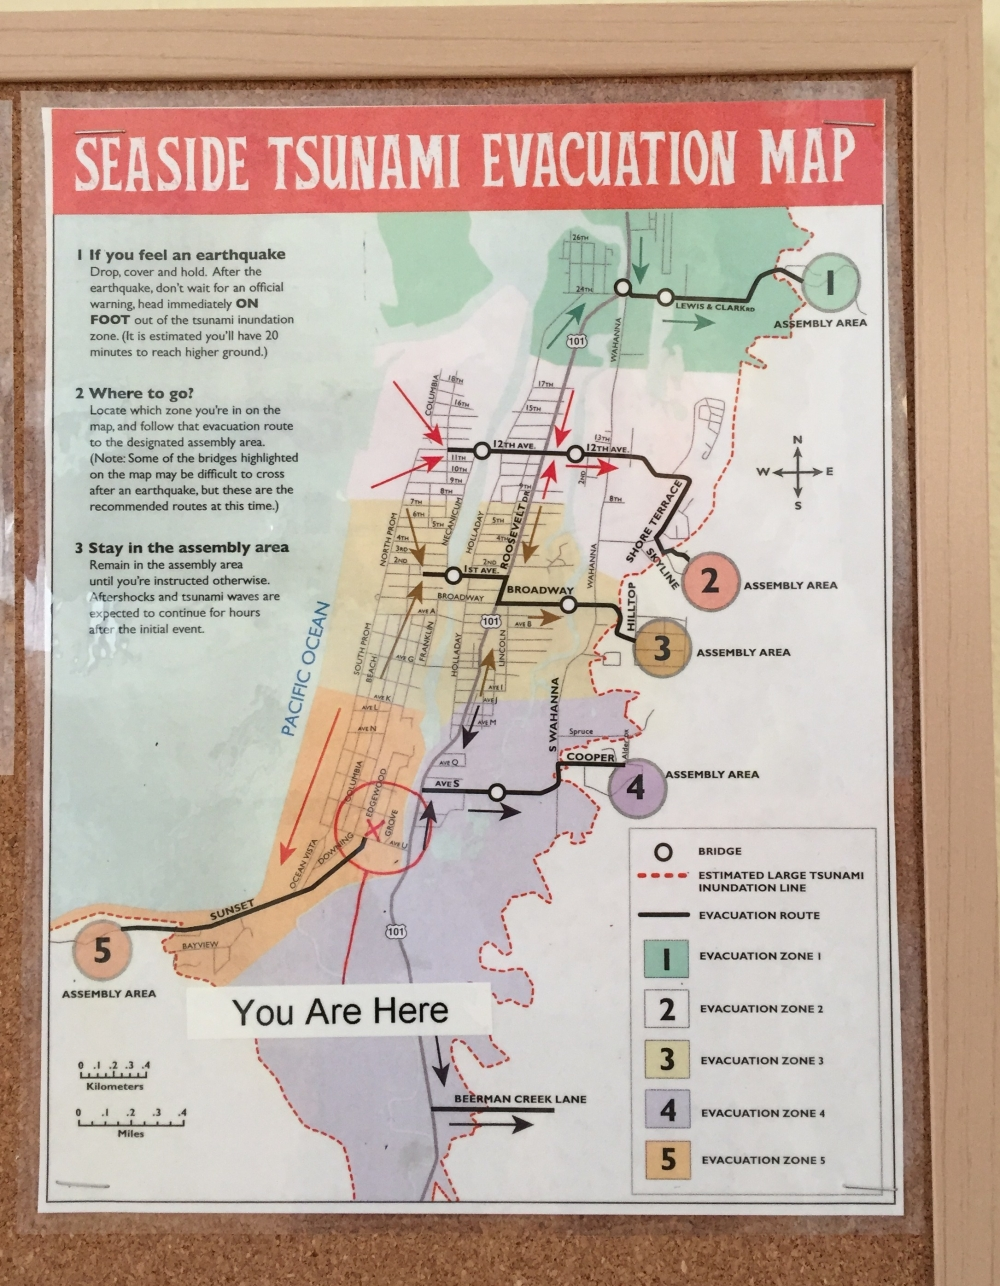 tsunami-evacuation-map.jpg